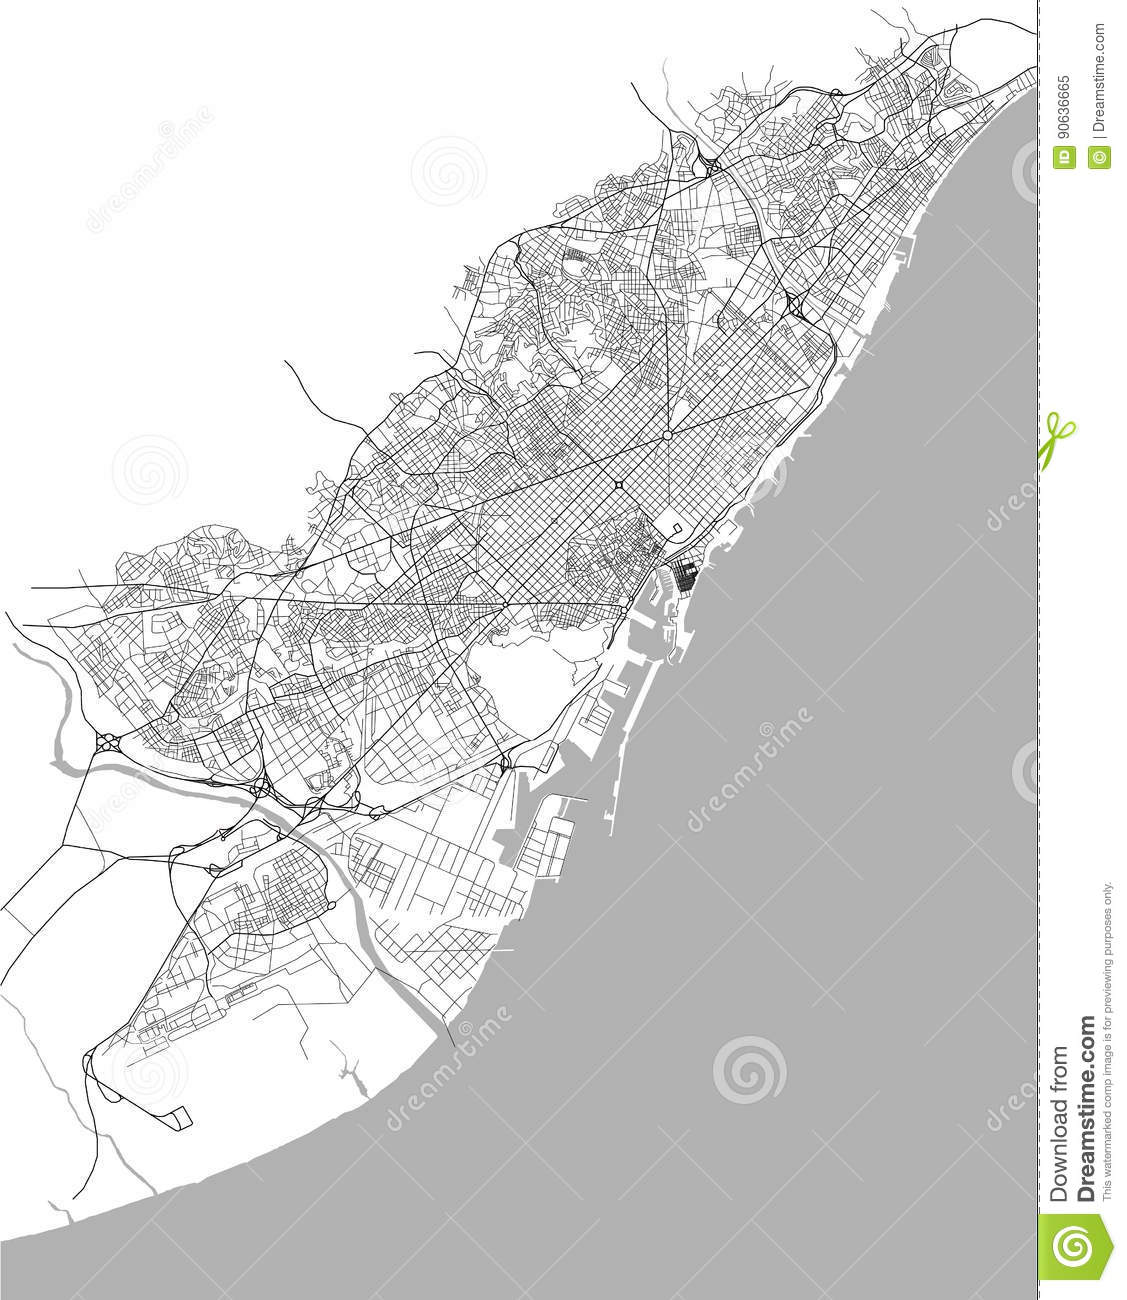 Barcelona In Spain Map.Map Of The City Center Of Barcelona Spain Stock Illustration